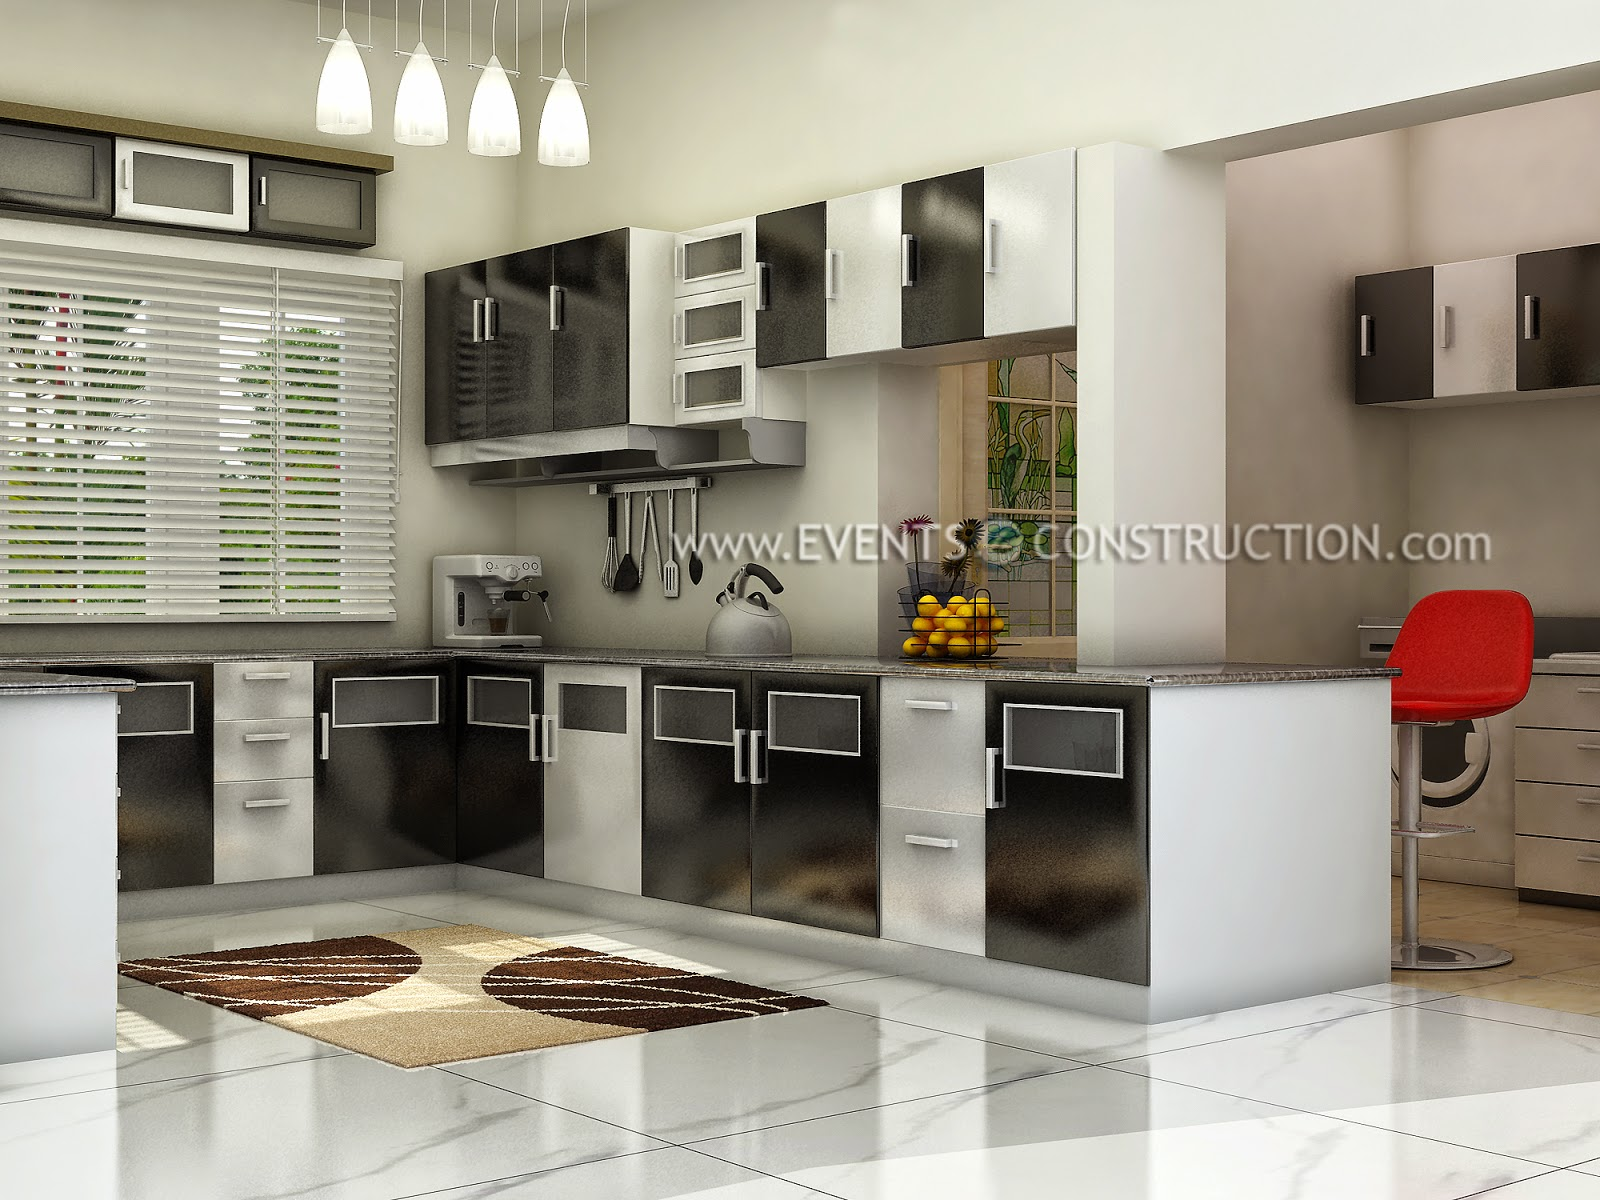 Evens construction pvt ltd kerala kitchen interior design for Modern kitchen designs in kerala